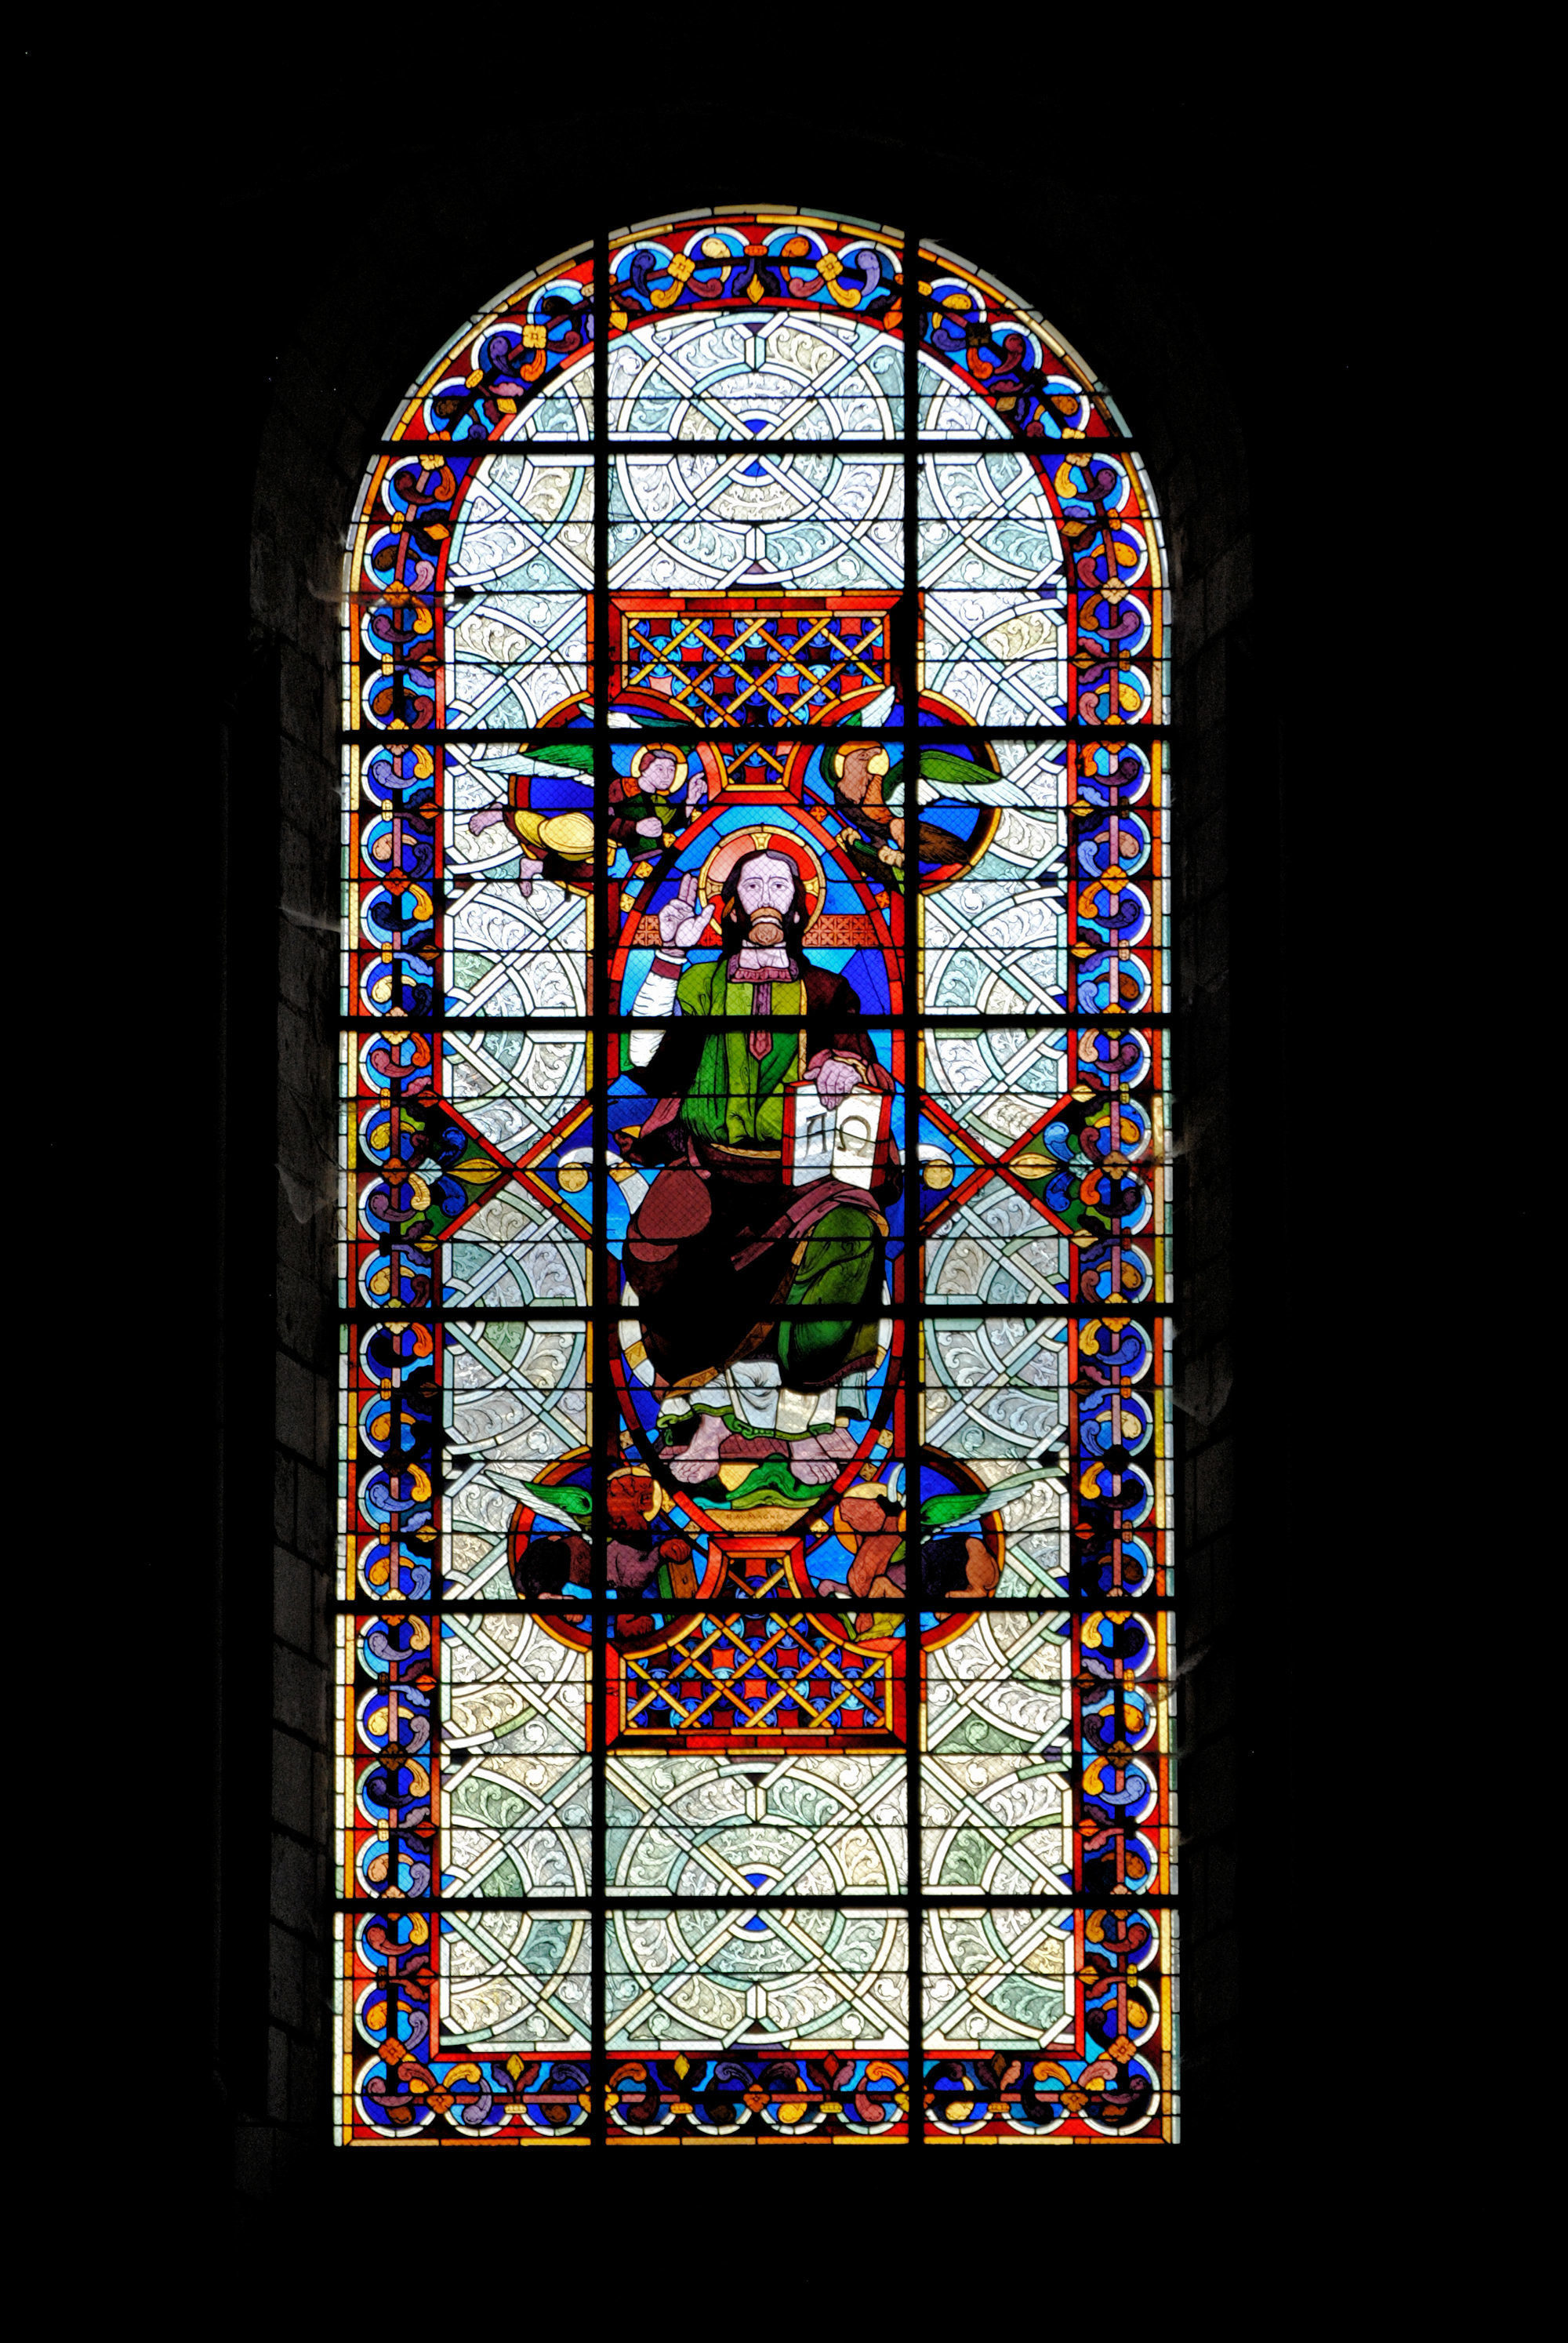 Vitrail - Stained glass window 15